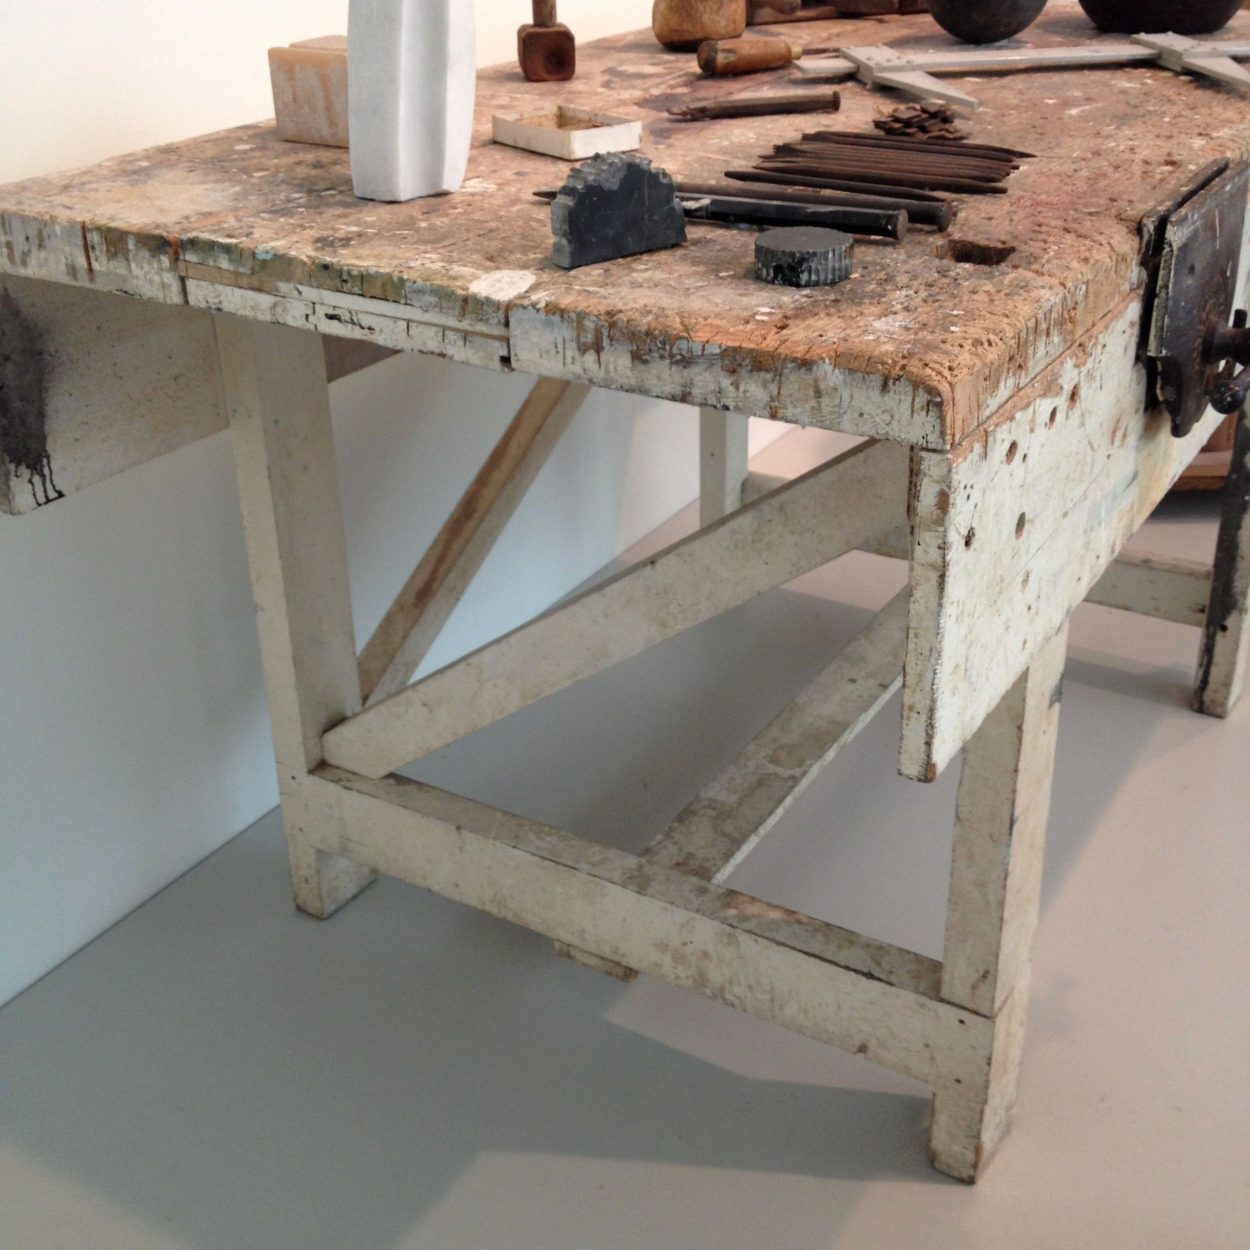 Barbara Hepworth's well-worn workbench at the Hepworth Gallery in Wakefield, West Yorkshire